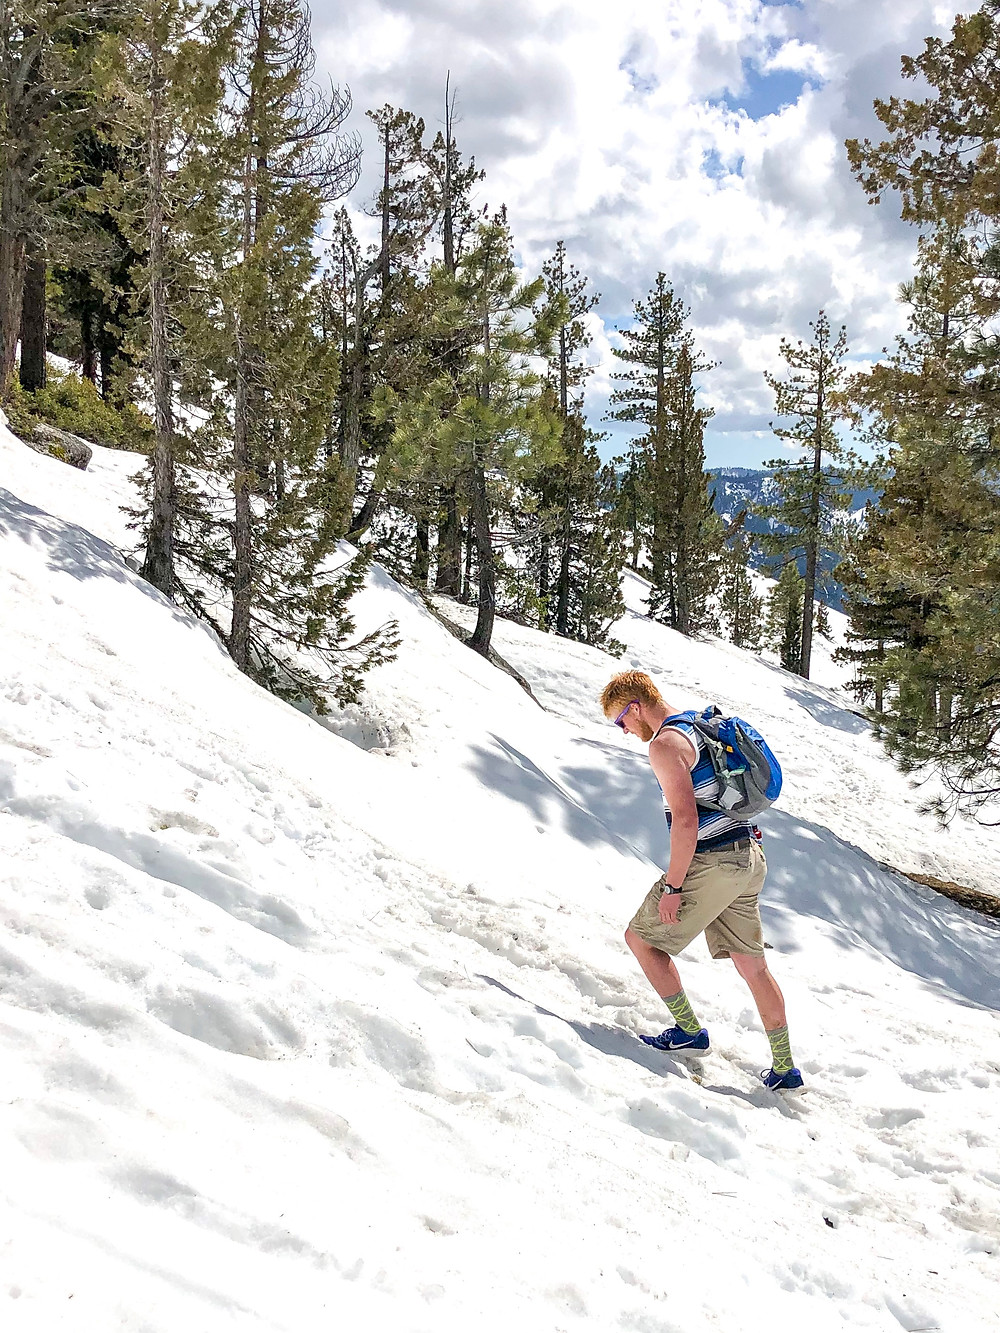 Joey Wallberg hiking up a snowy mountainside in his tennis shoes on the way up to the top of Yosemite Falls